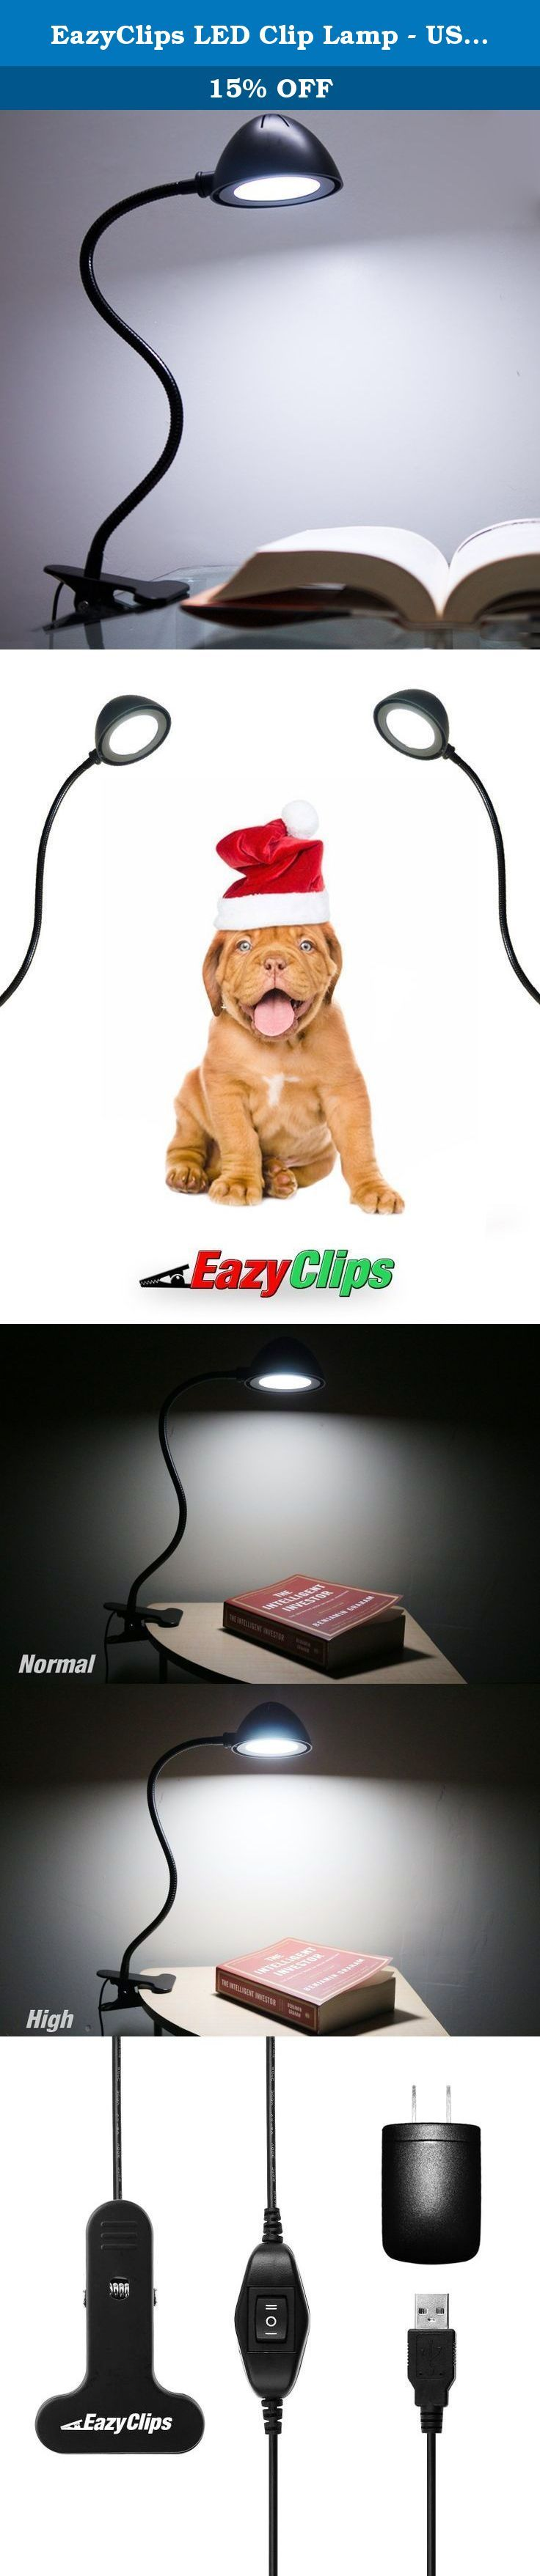 """EazyClips LED Clip Lamp - USB Energy Saving 23"""" Clamp Desk Lamp, Two Modes of Brightness Ideal for Bed or Office. EazyClips is home to the easiest and strongest Clip-On products. The newly crafted EazyClips LED Clip-On Desk Lamp was architected to lighten up your life through its carefully engineered design. Its features come together to produce the most powerful Clamp Lamp on the market. Features: EazyClips LED Clip-On Desk Lamp is equipped with 6 bright LEDs that will produce a Radiant..."""